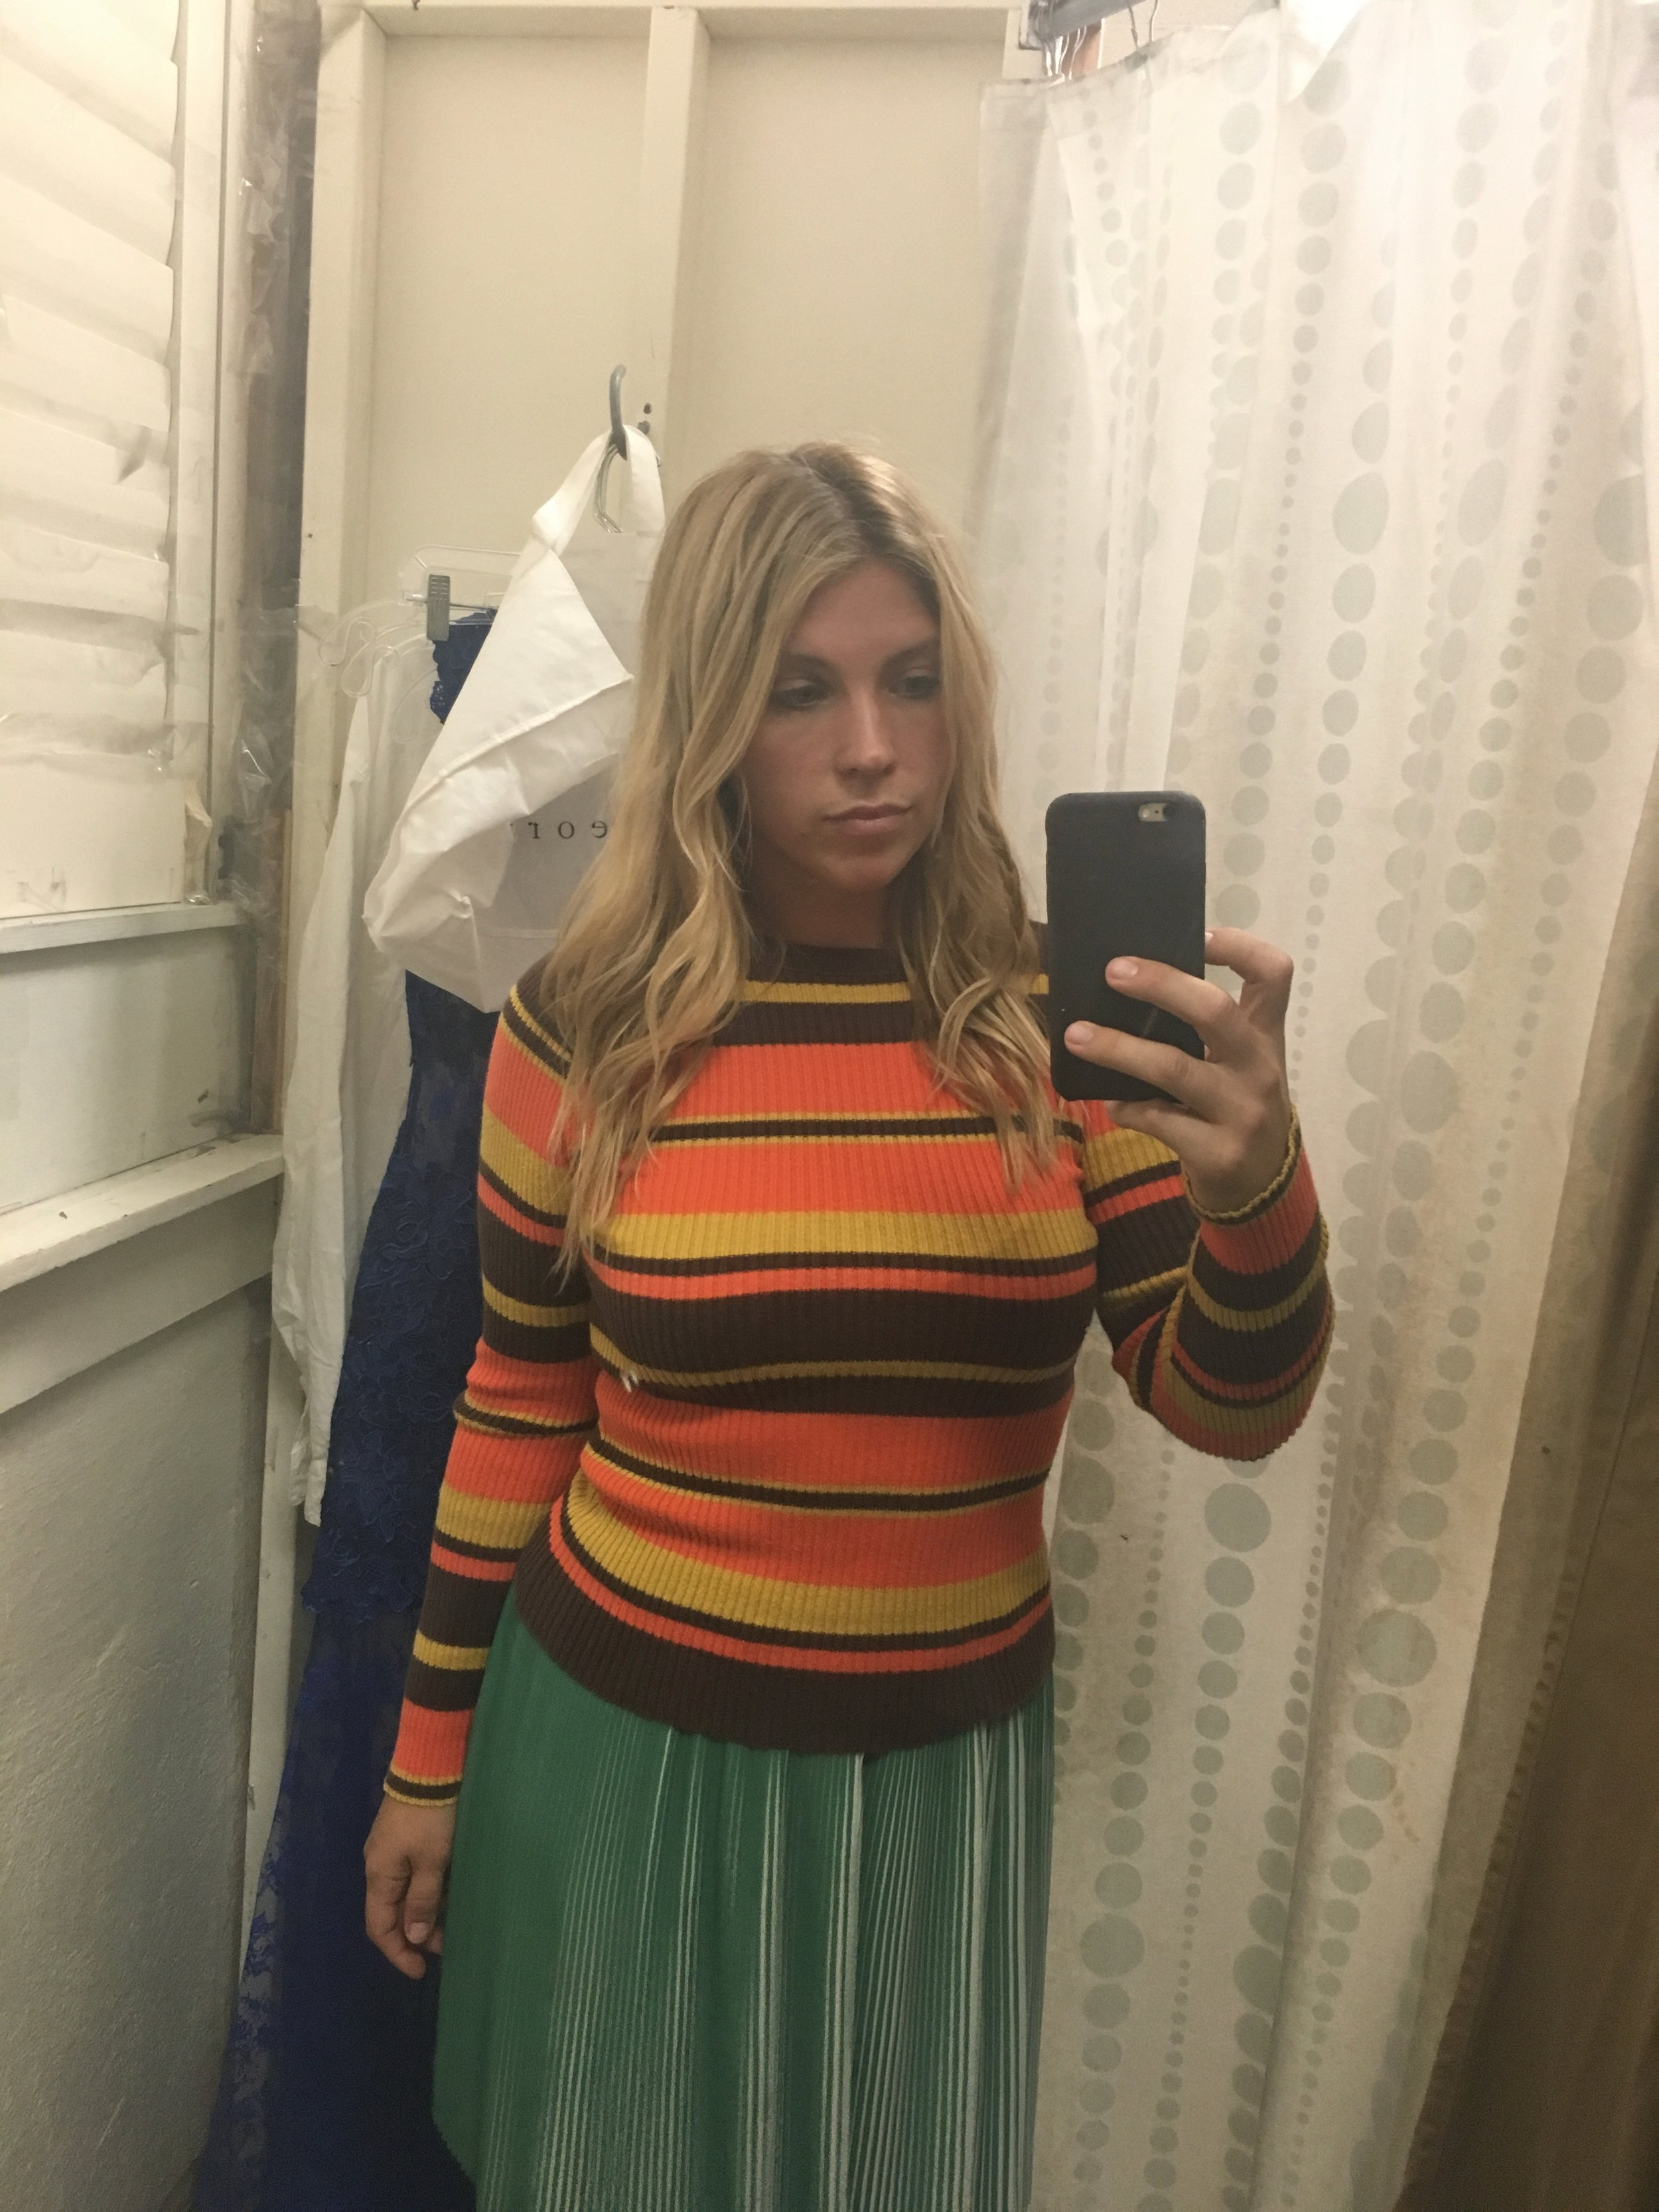 an clear almost - would have been a funny sweater for Halloween time. Did not purchase.